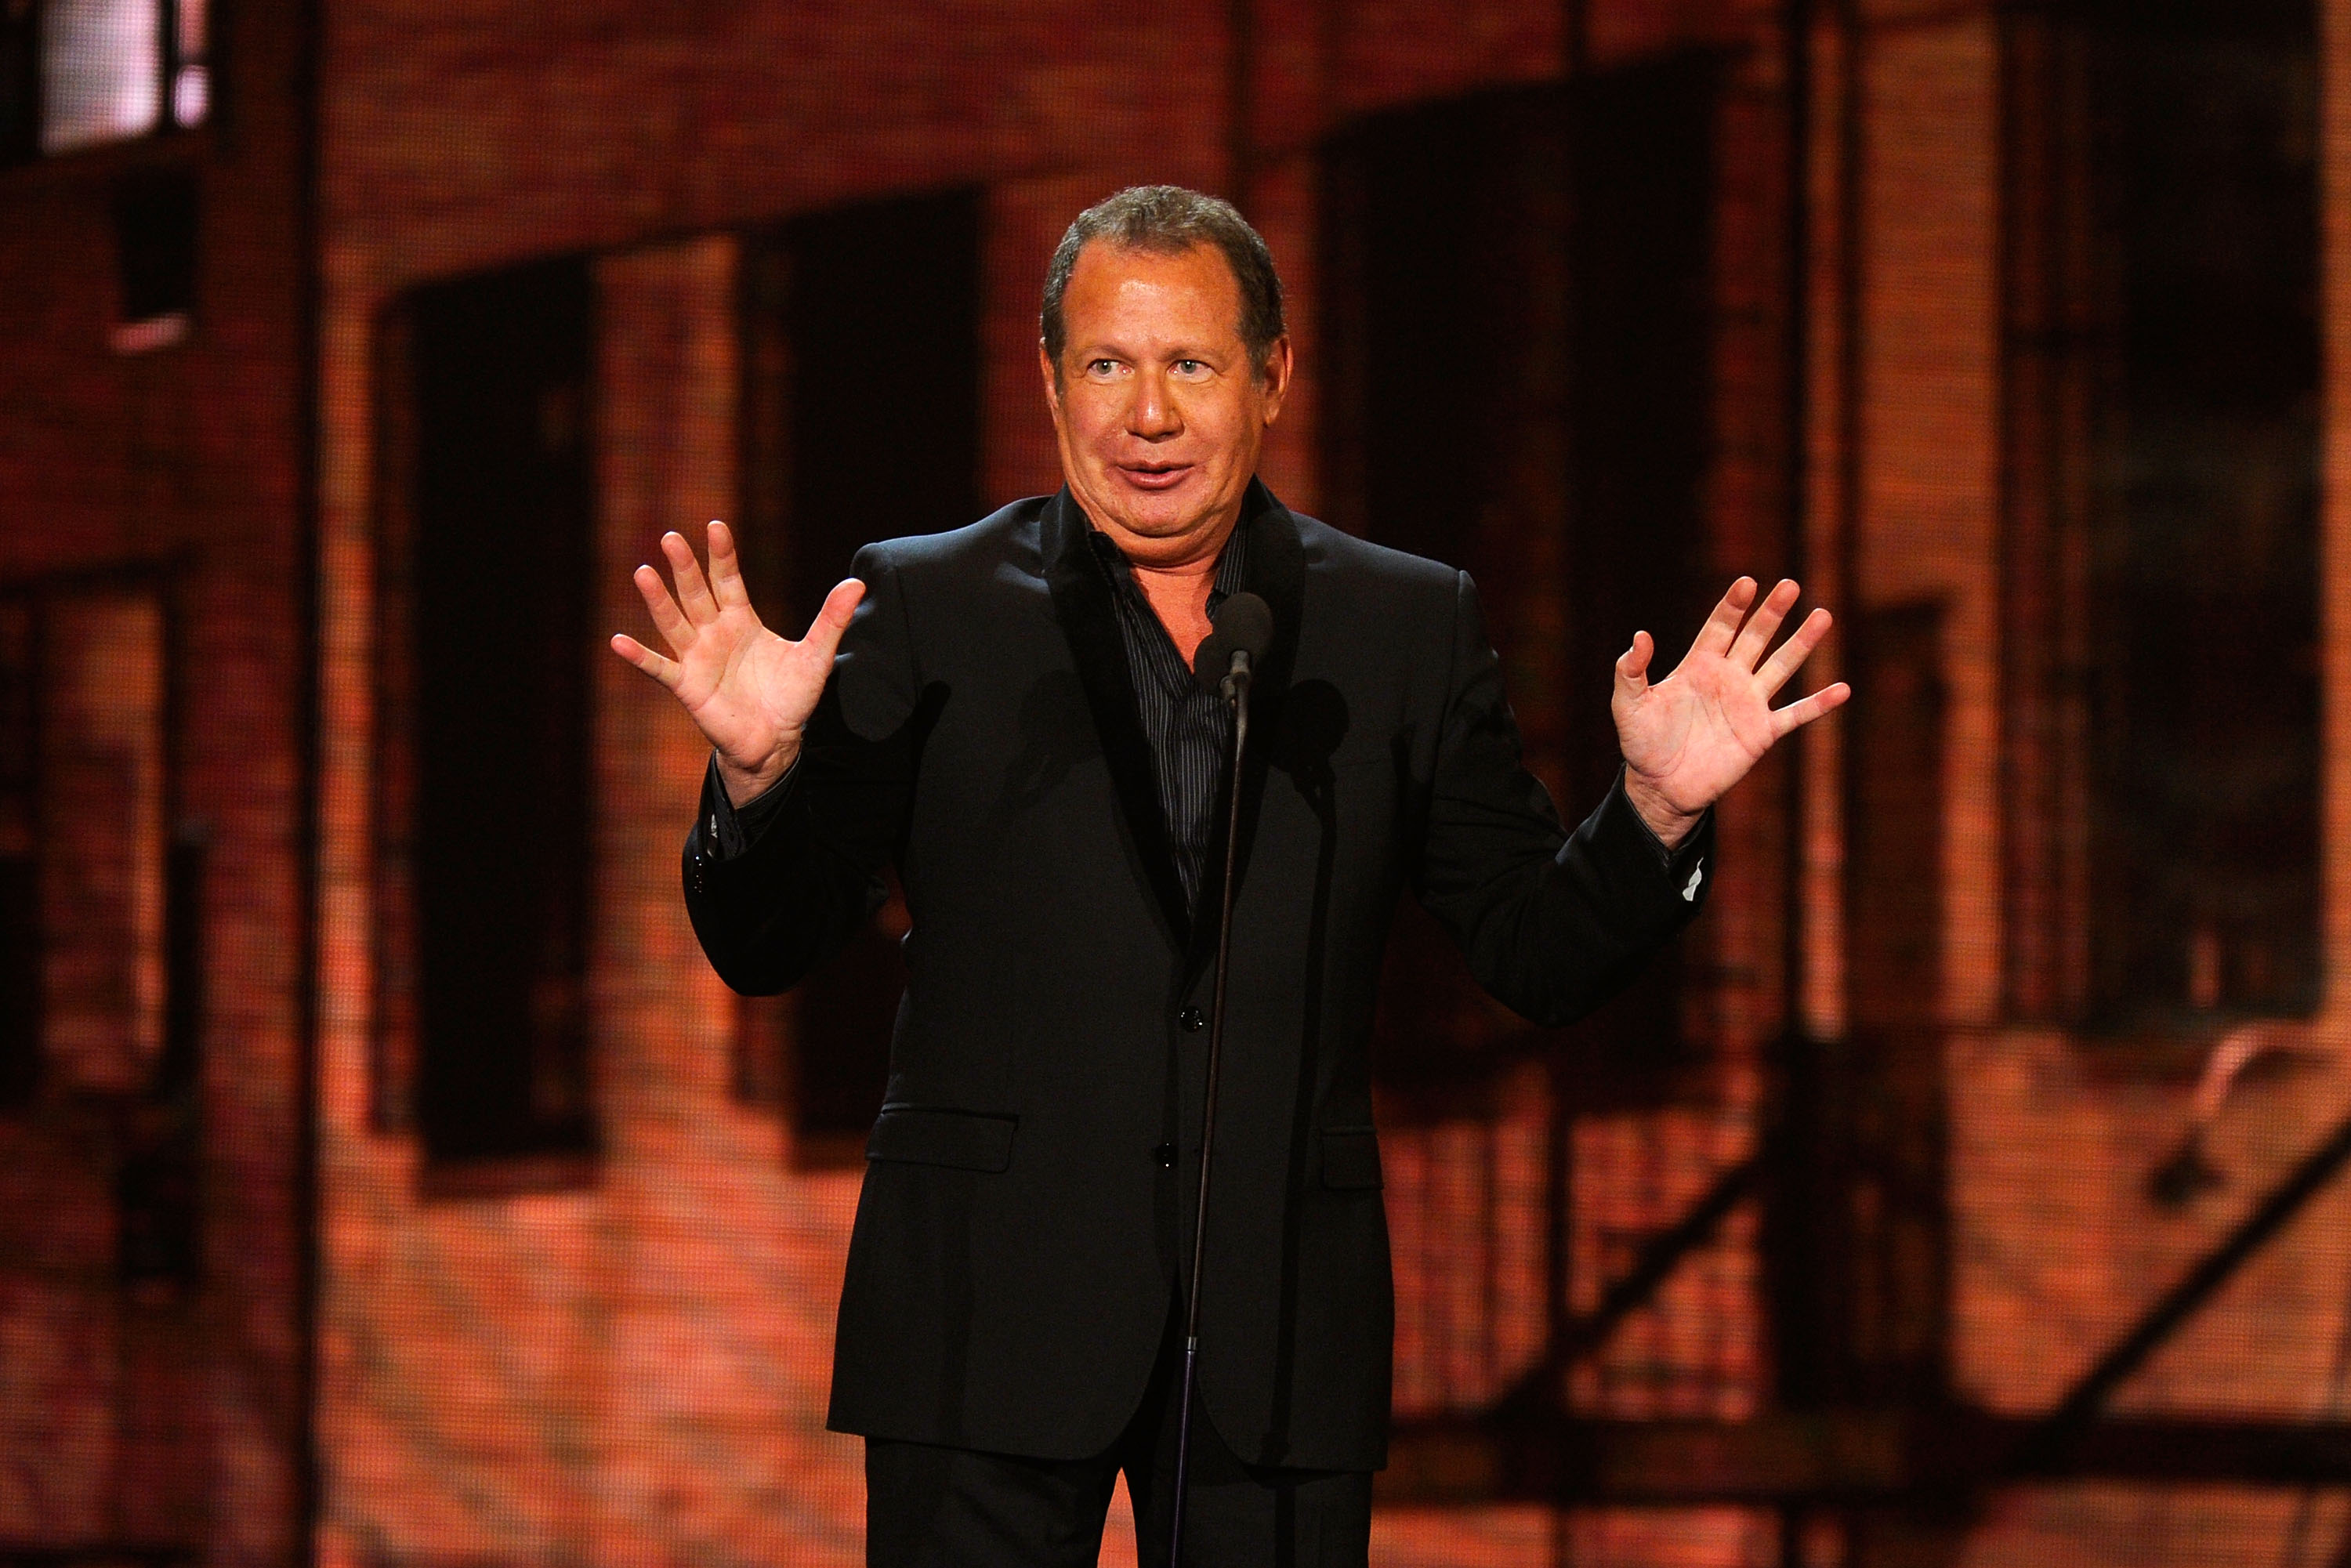 Garry Shandling speaks onstage at the First Annual Comedy Awards at Hammerstein Ballroom on March 26, 2011 in New York City.  (Getty)